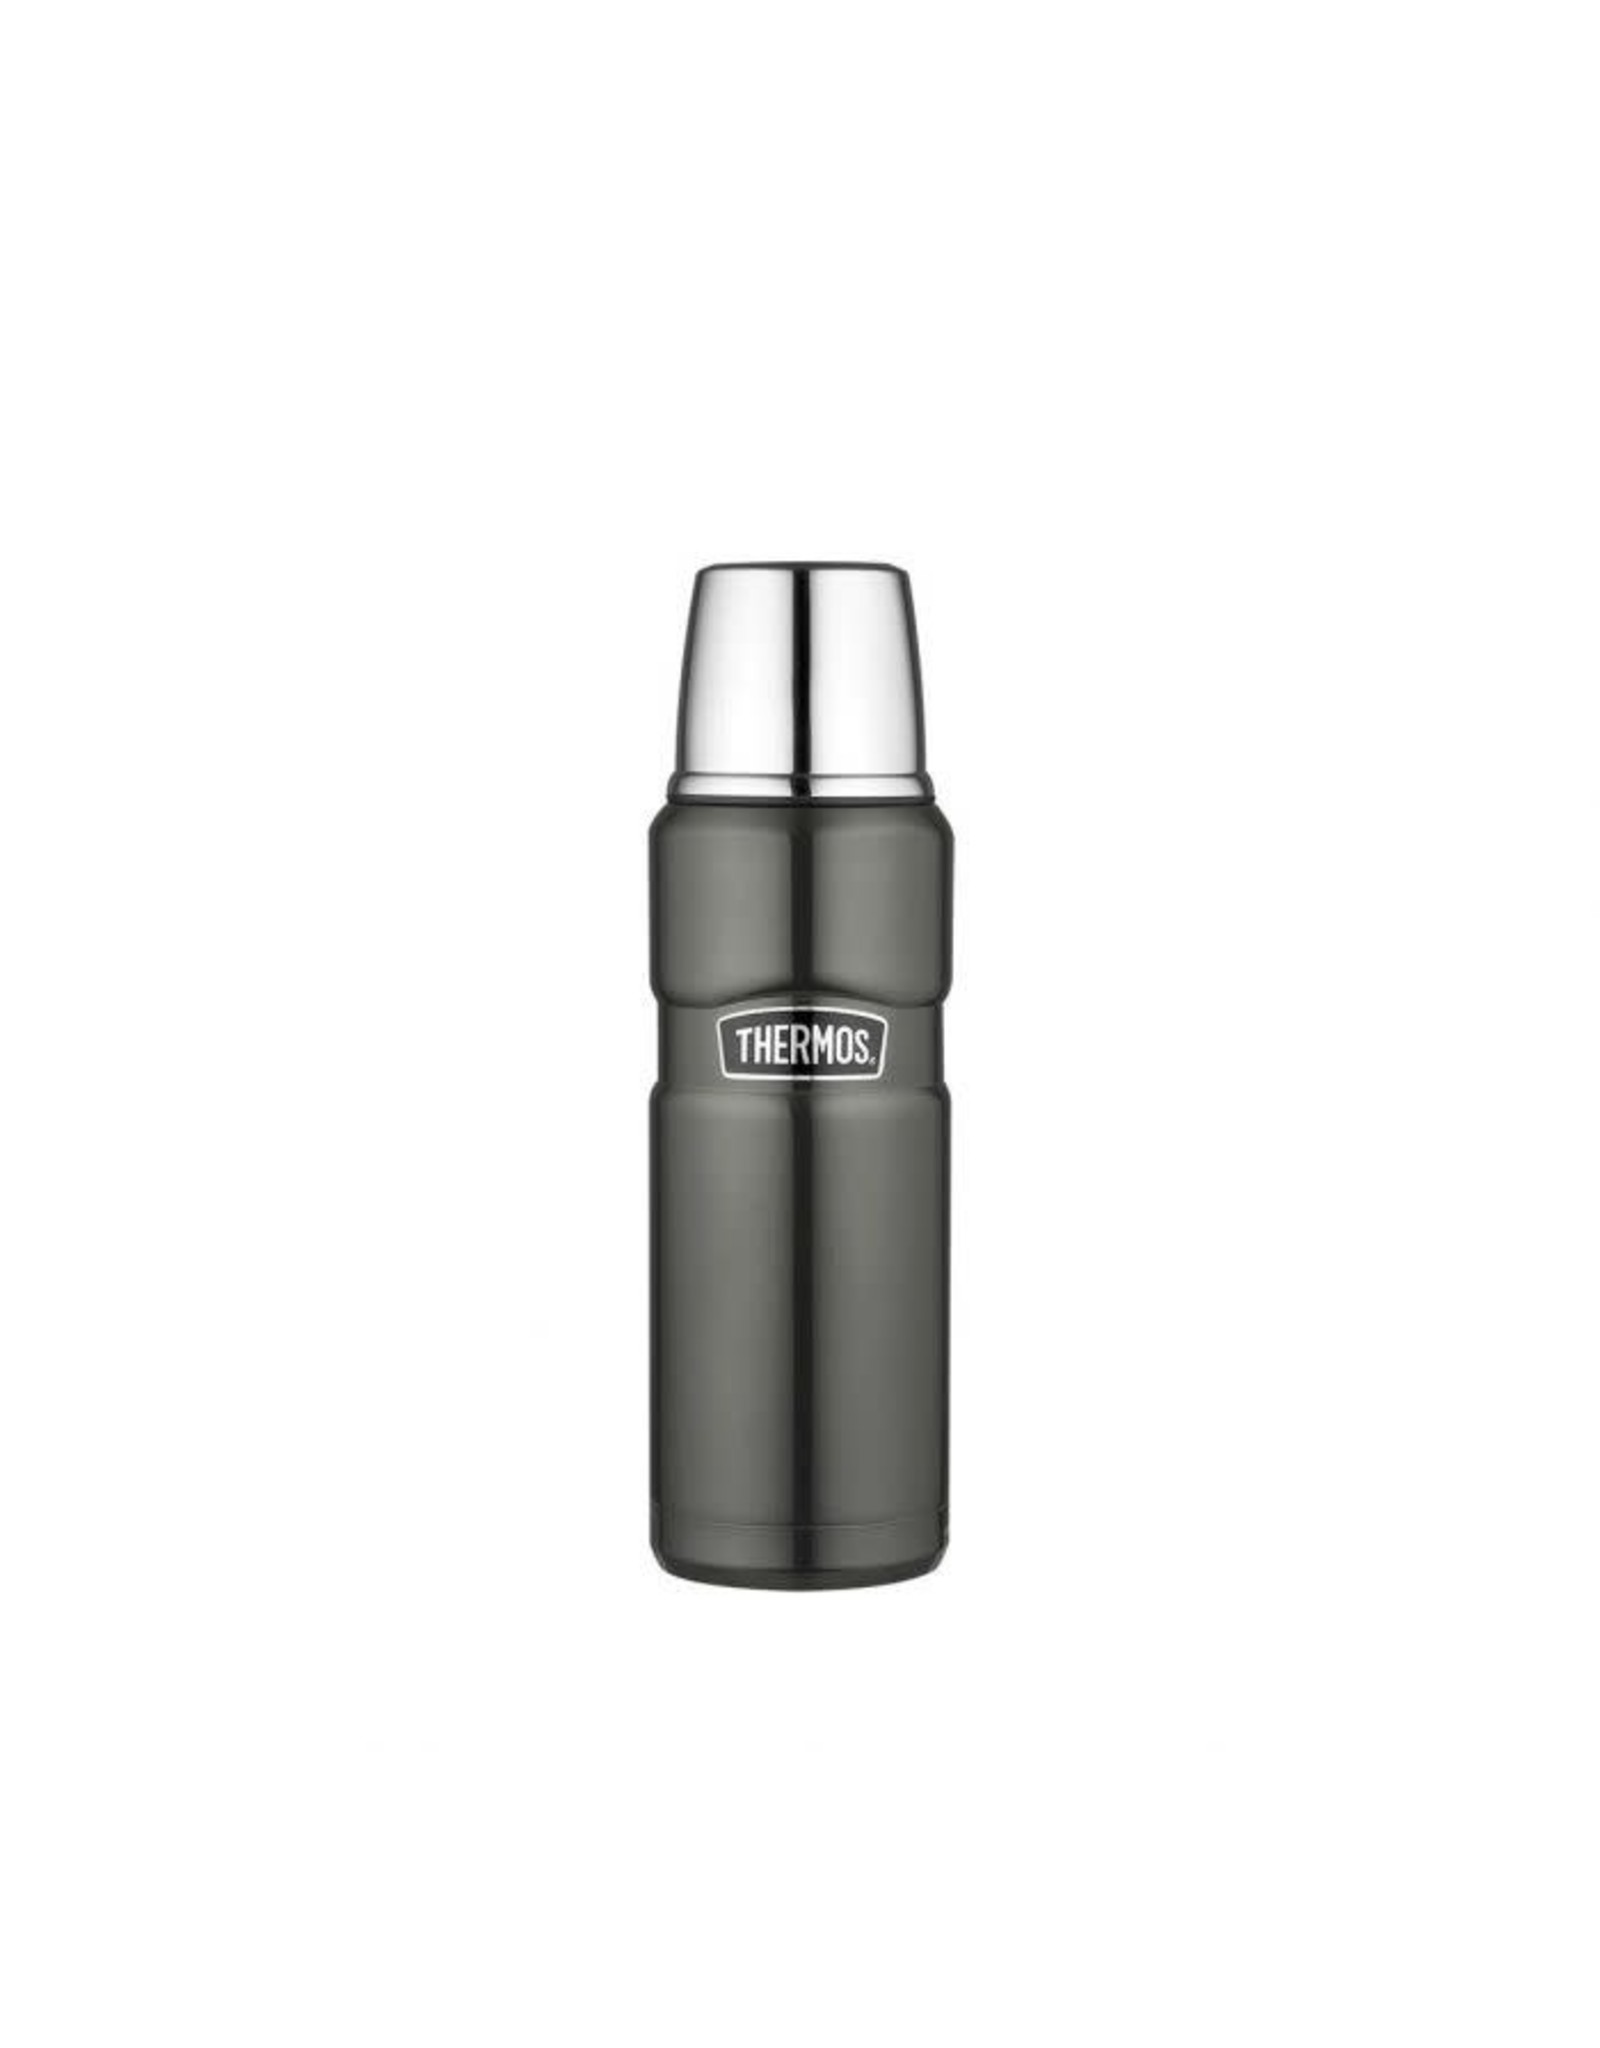 Thermos Isoleerfles 470ml grijs